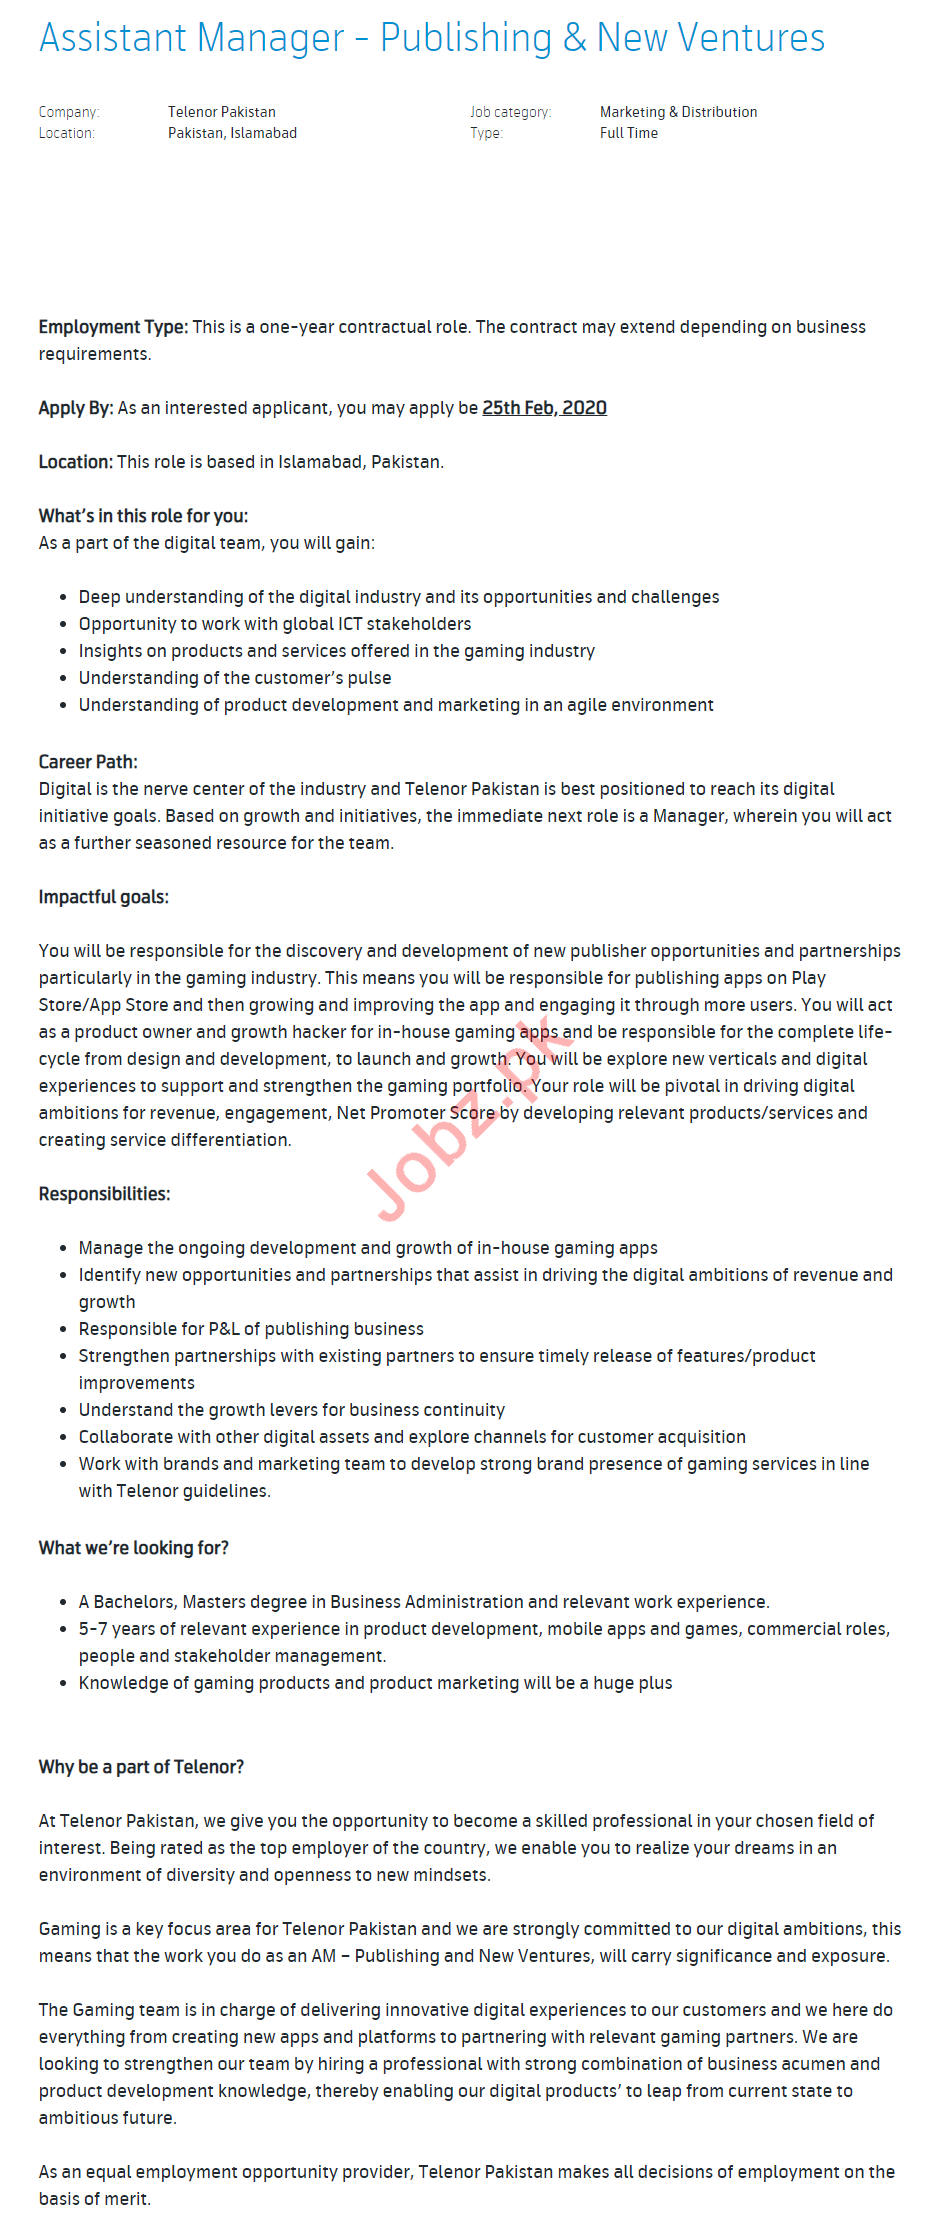 Telenor Pakistan Jobs 2020 for Assistant Manager